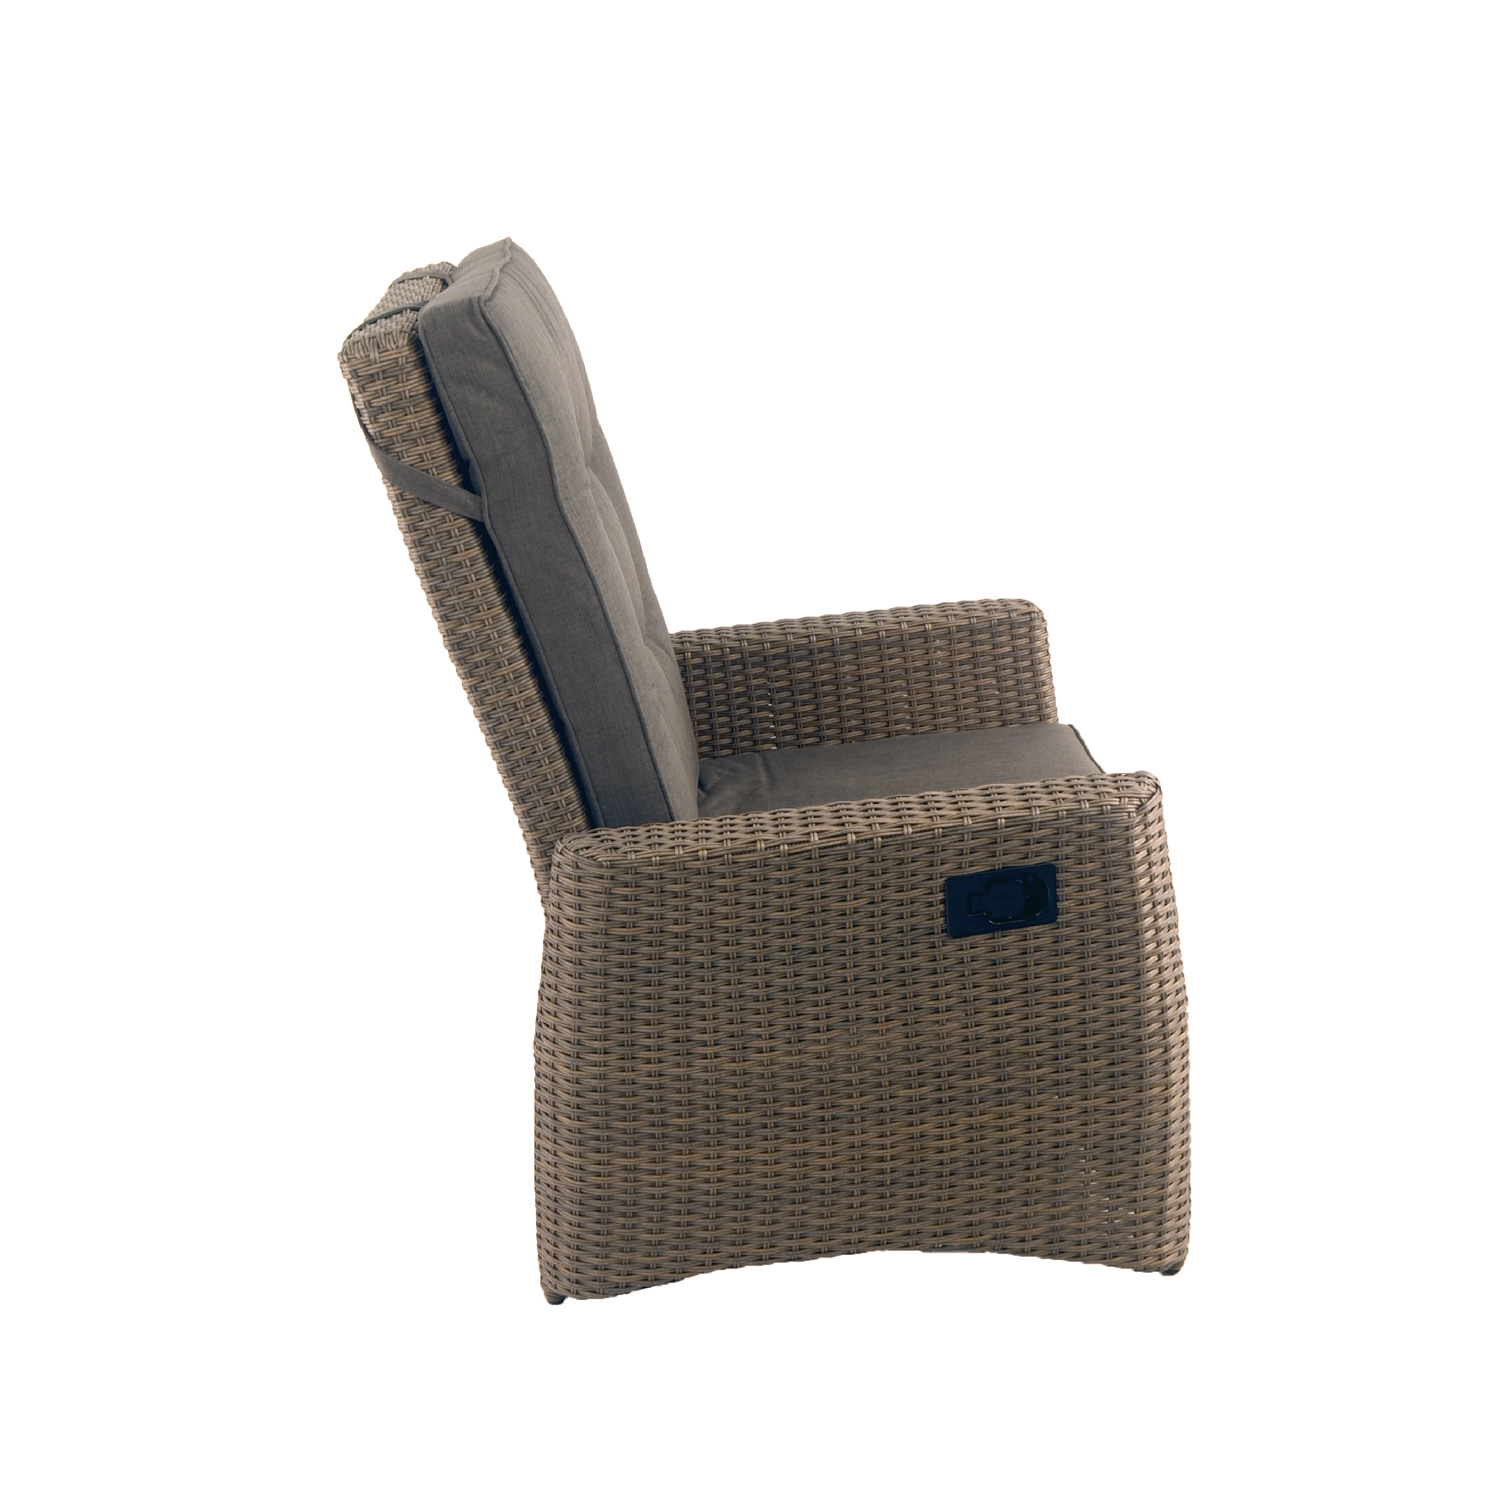 Milbrone Recliner Chair